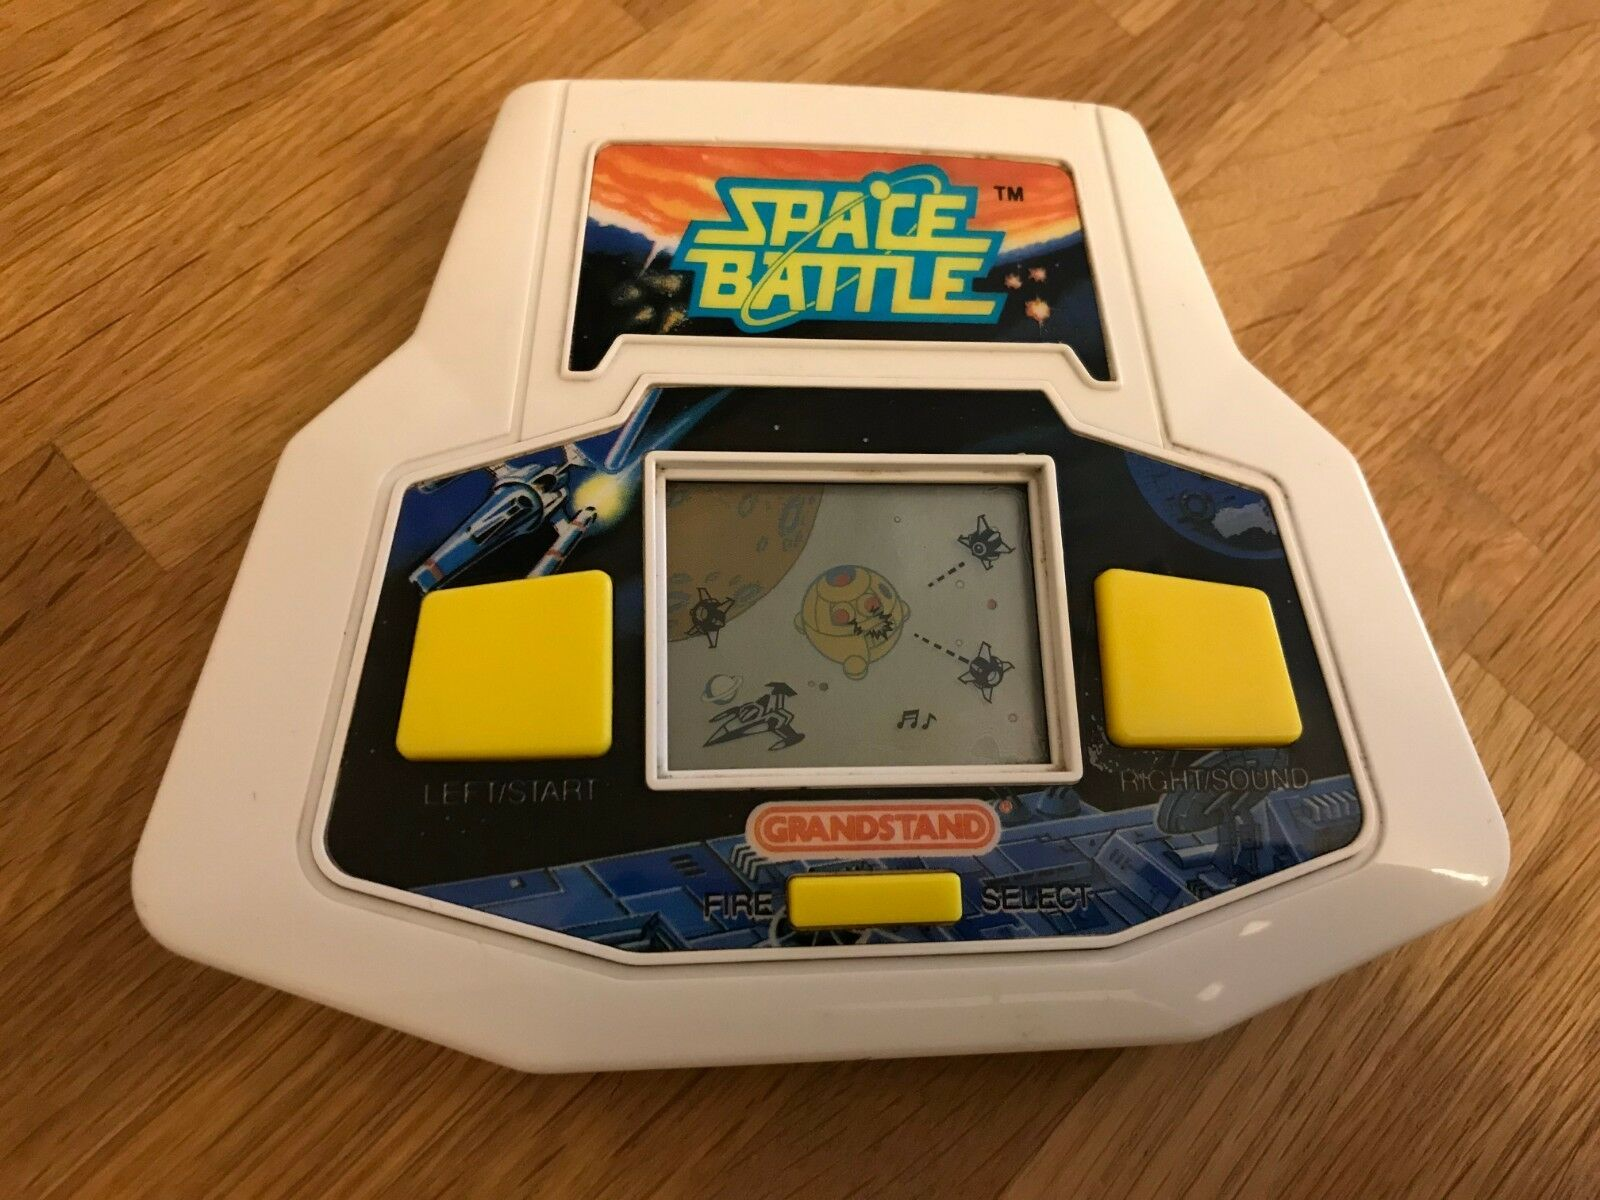 Ultra Rare 1st Gen Grandstand Space Battle 1989 LCD Electronic Game-Early Serial